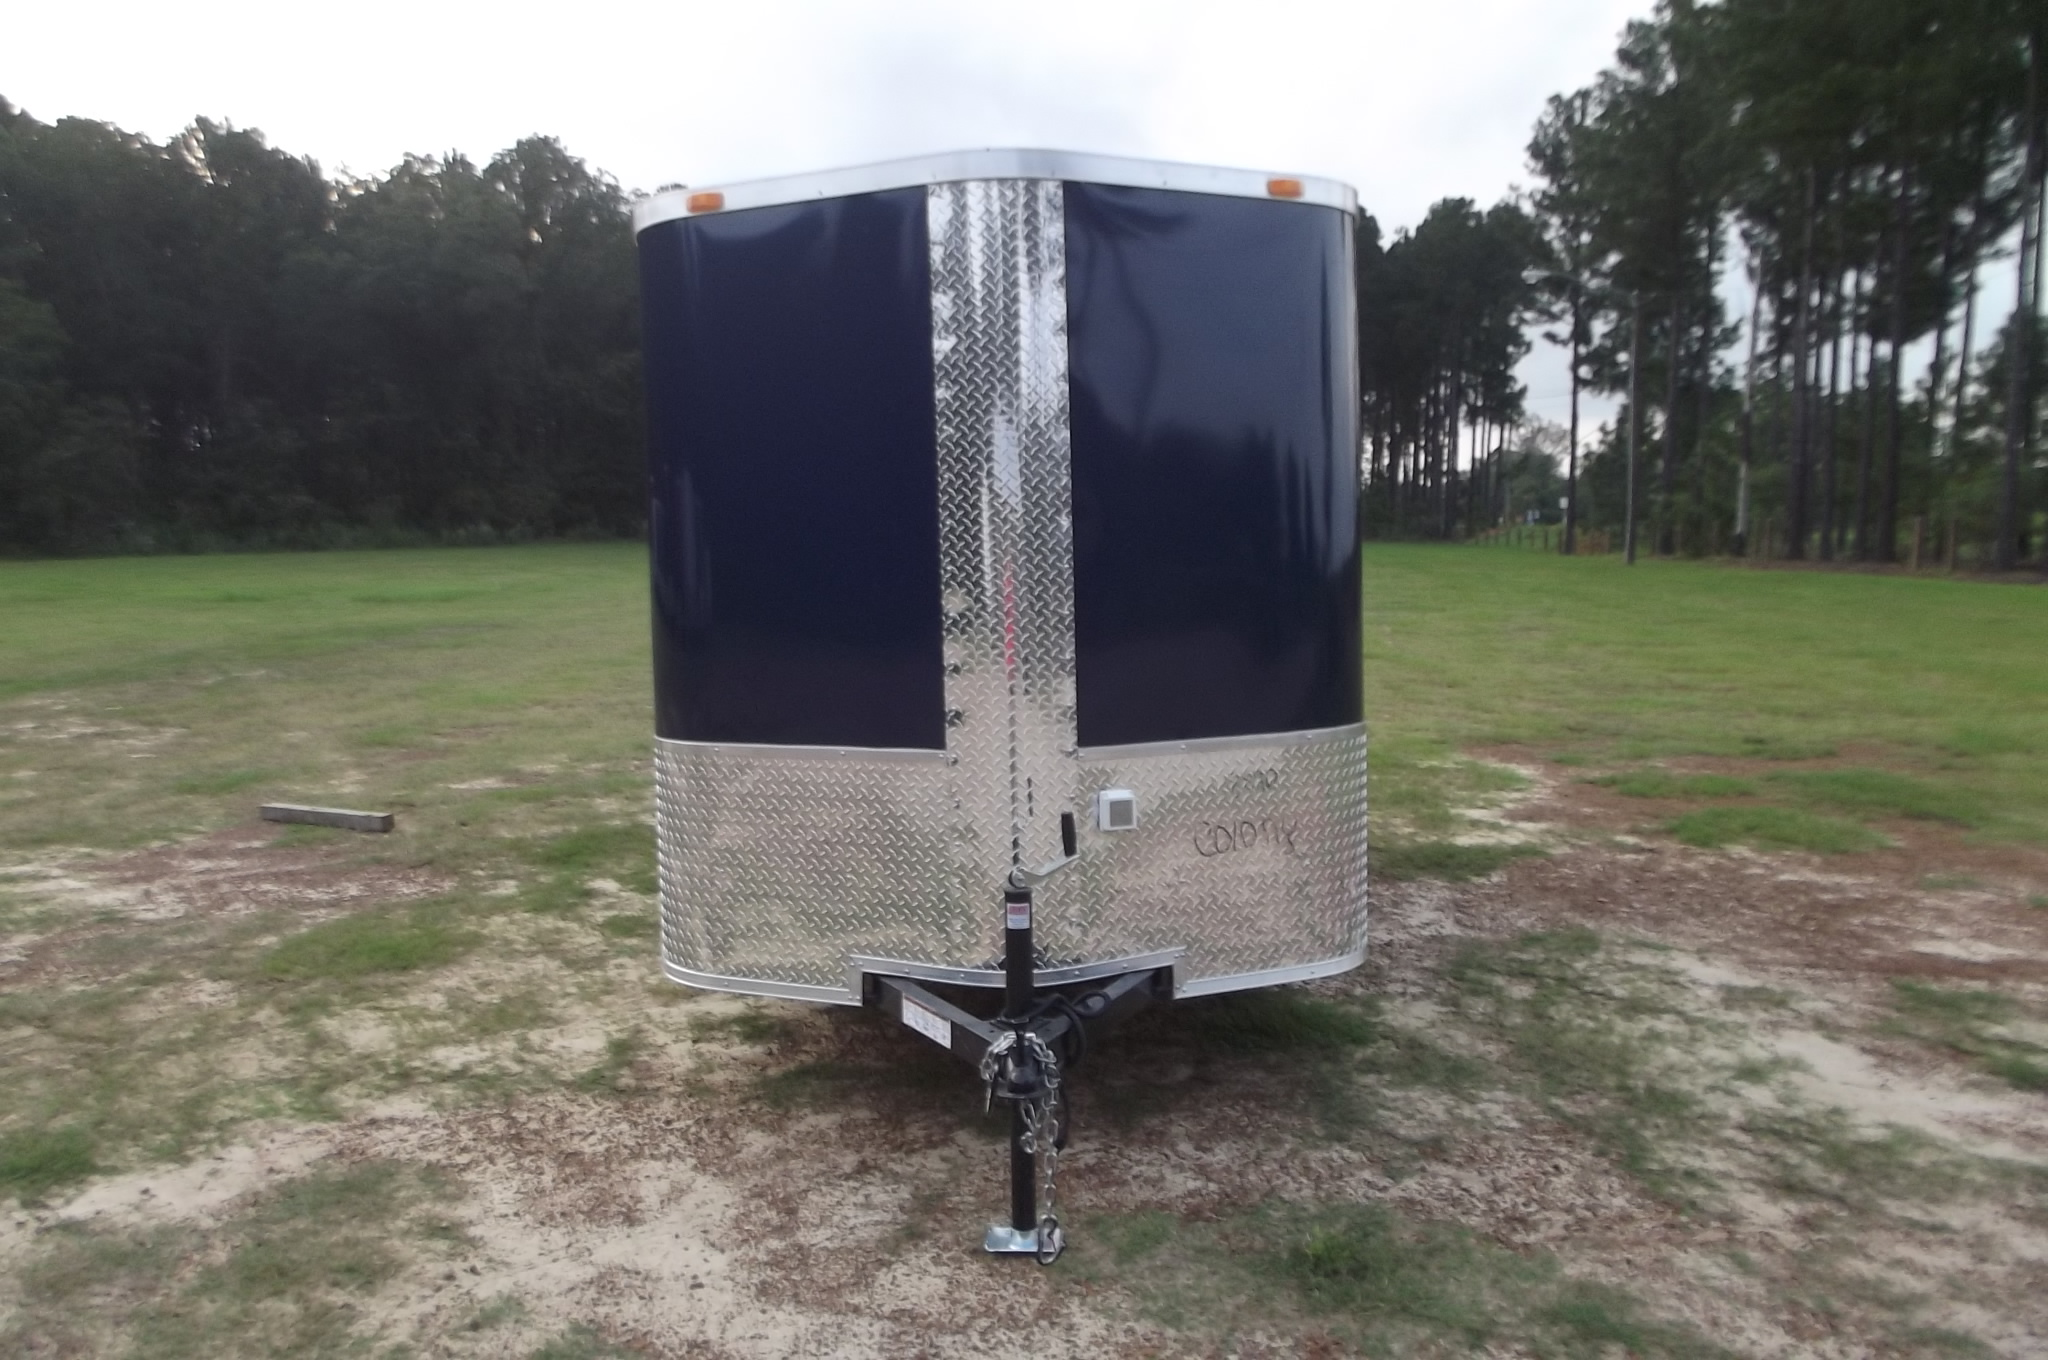 Colonys Dog Grooming Enclosed Trailer 702 Xtra Tuff Trailers